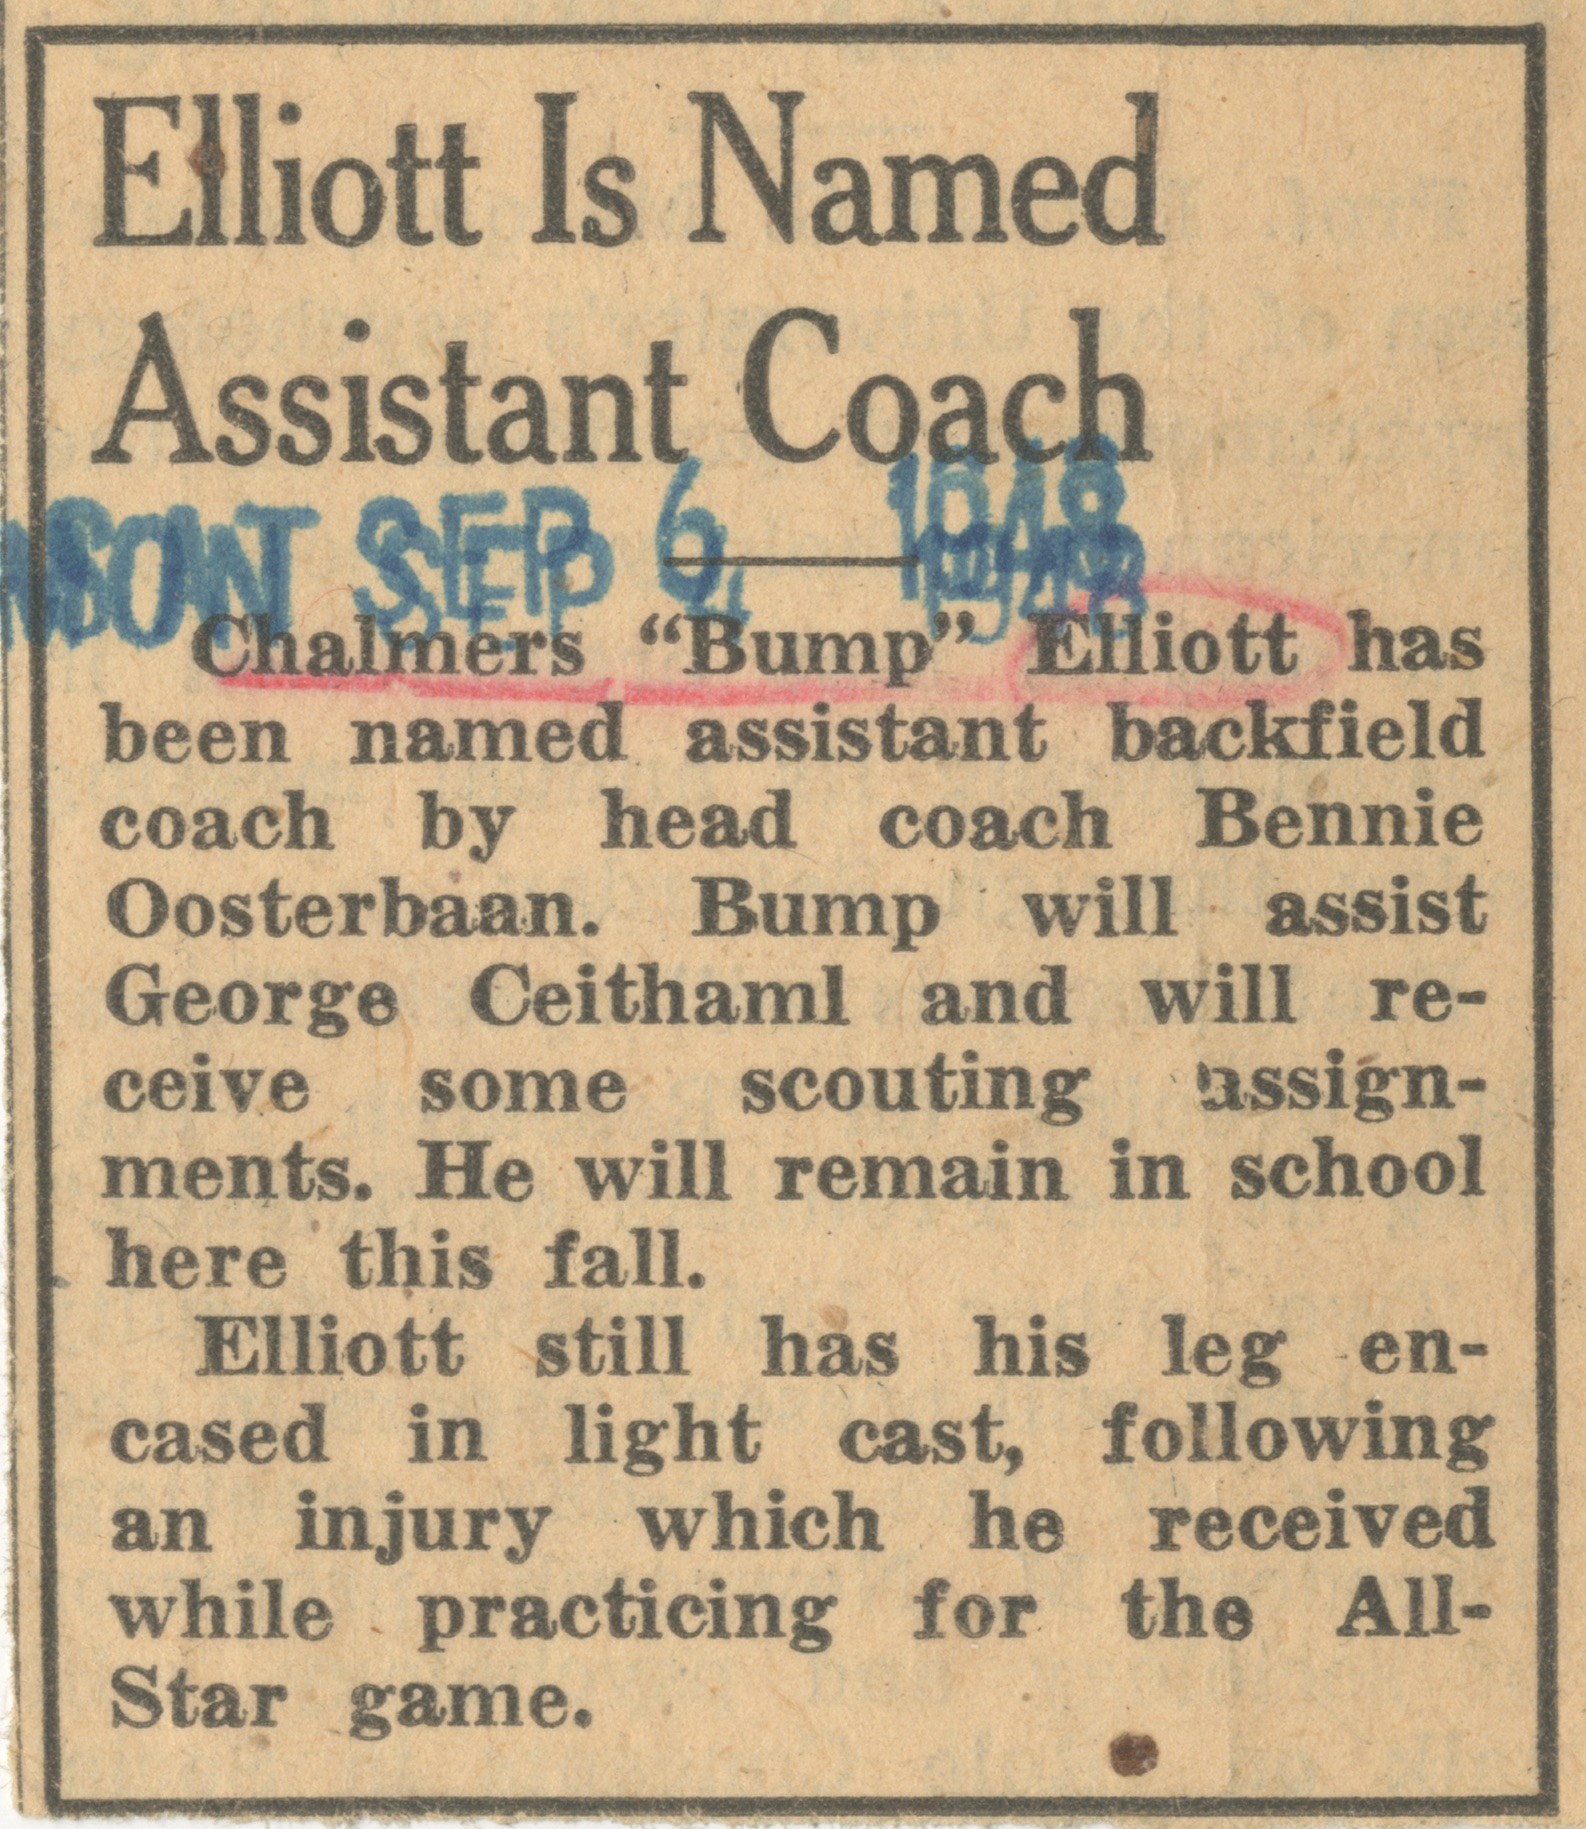 Elliott Is Named Assistant Coach image